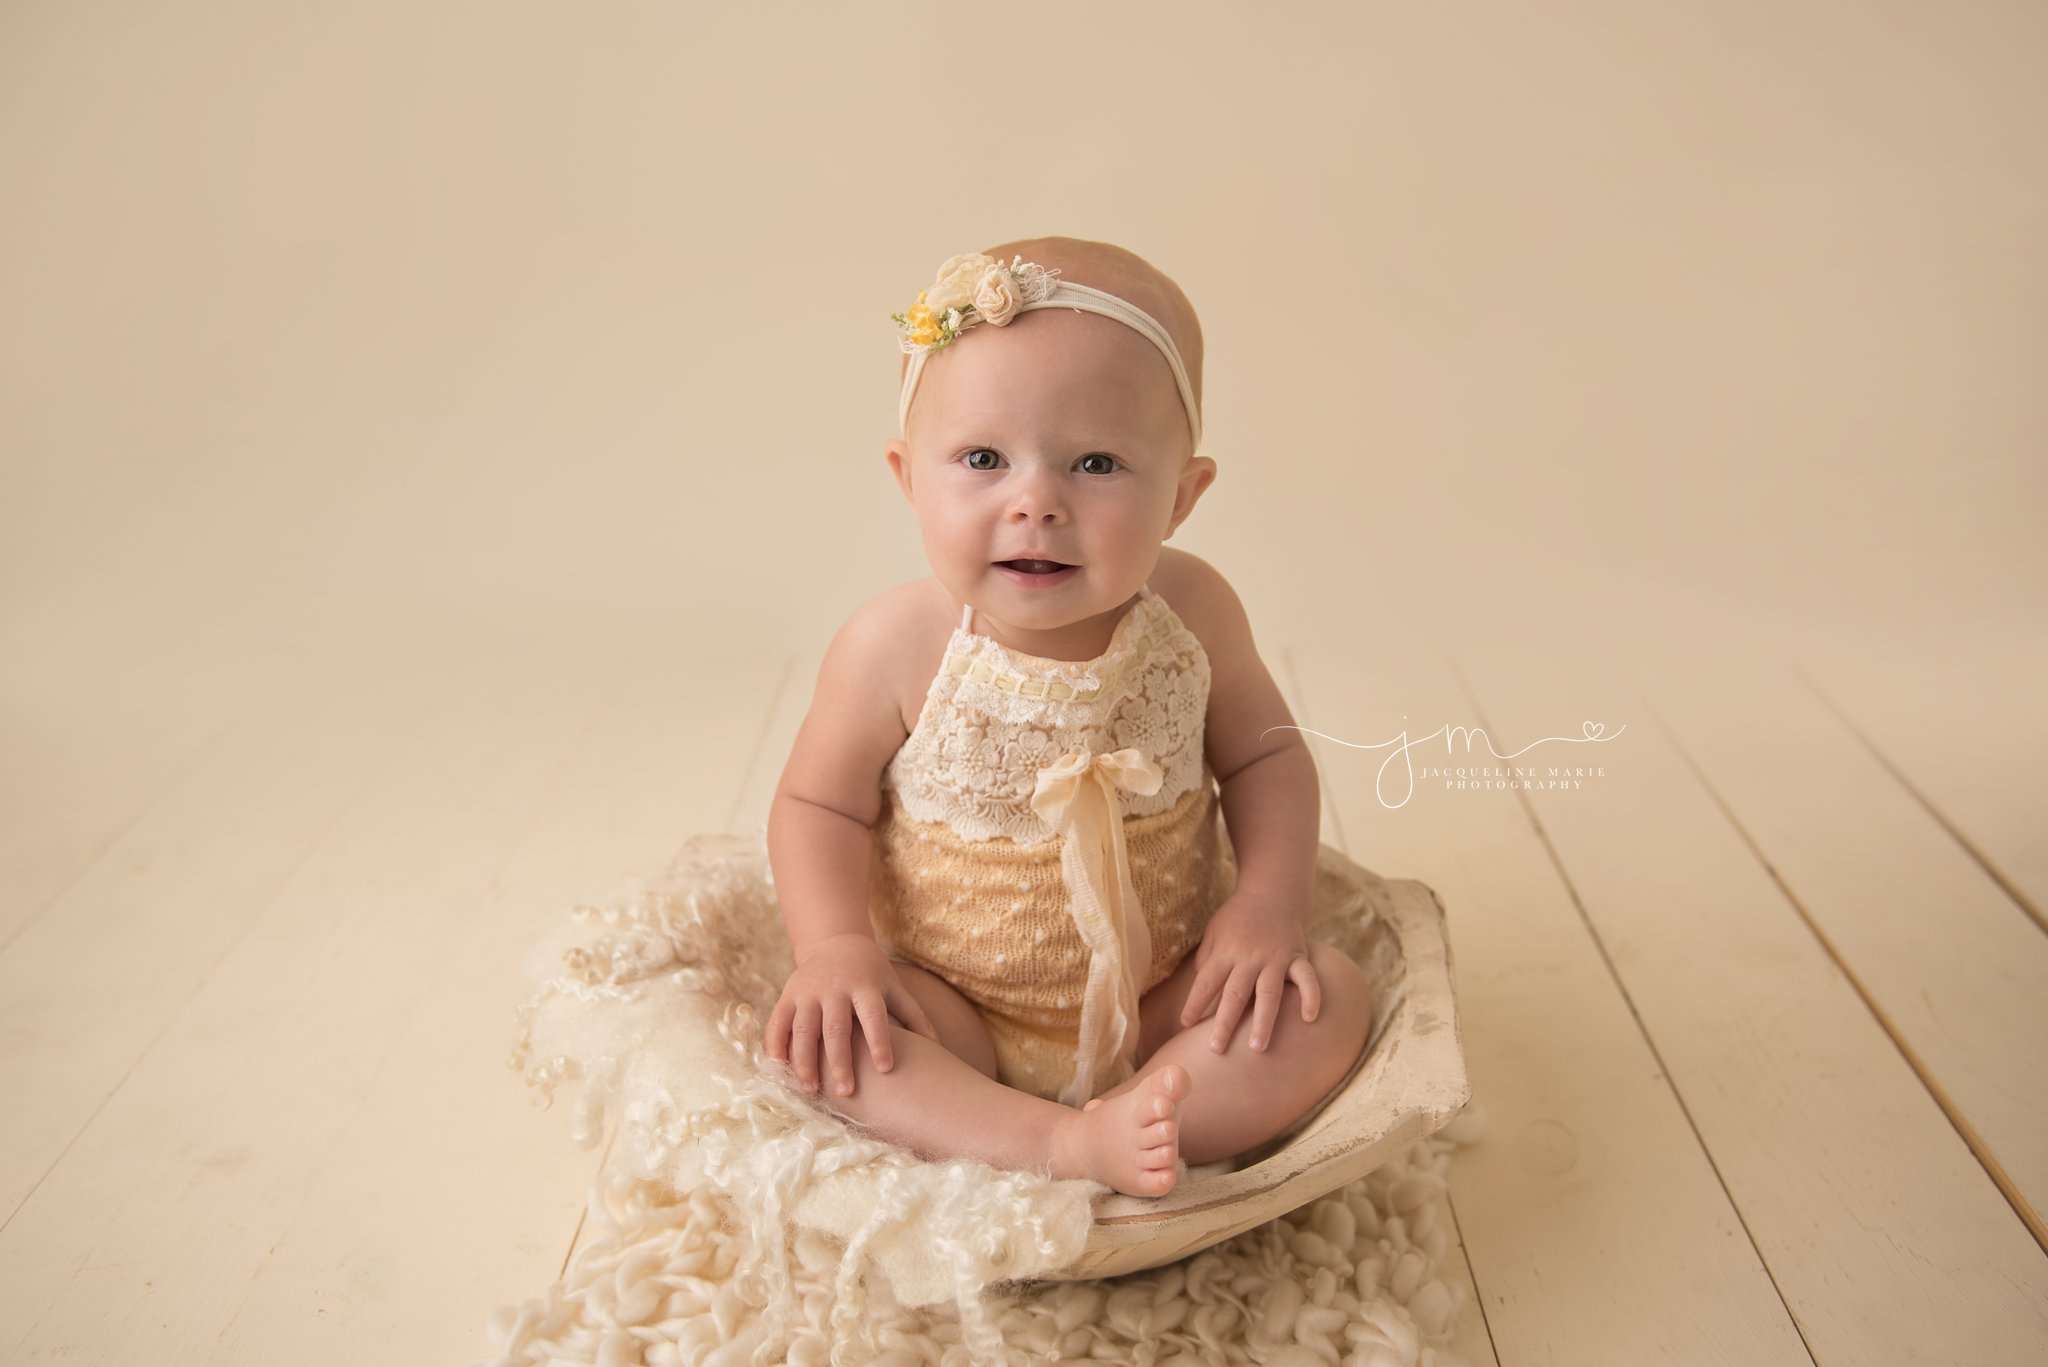 columbus ohio newborn and child photographer features image of baby girl wearing yellow romper